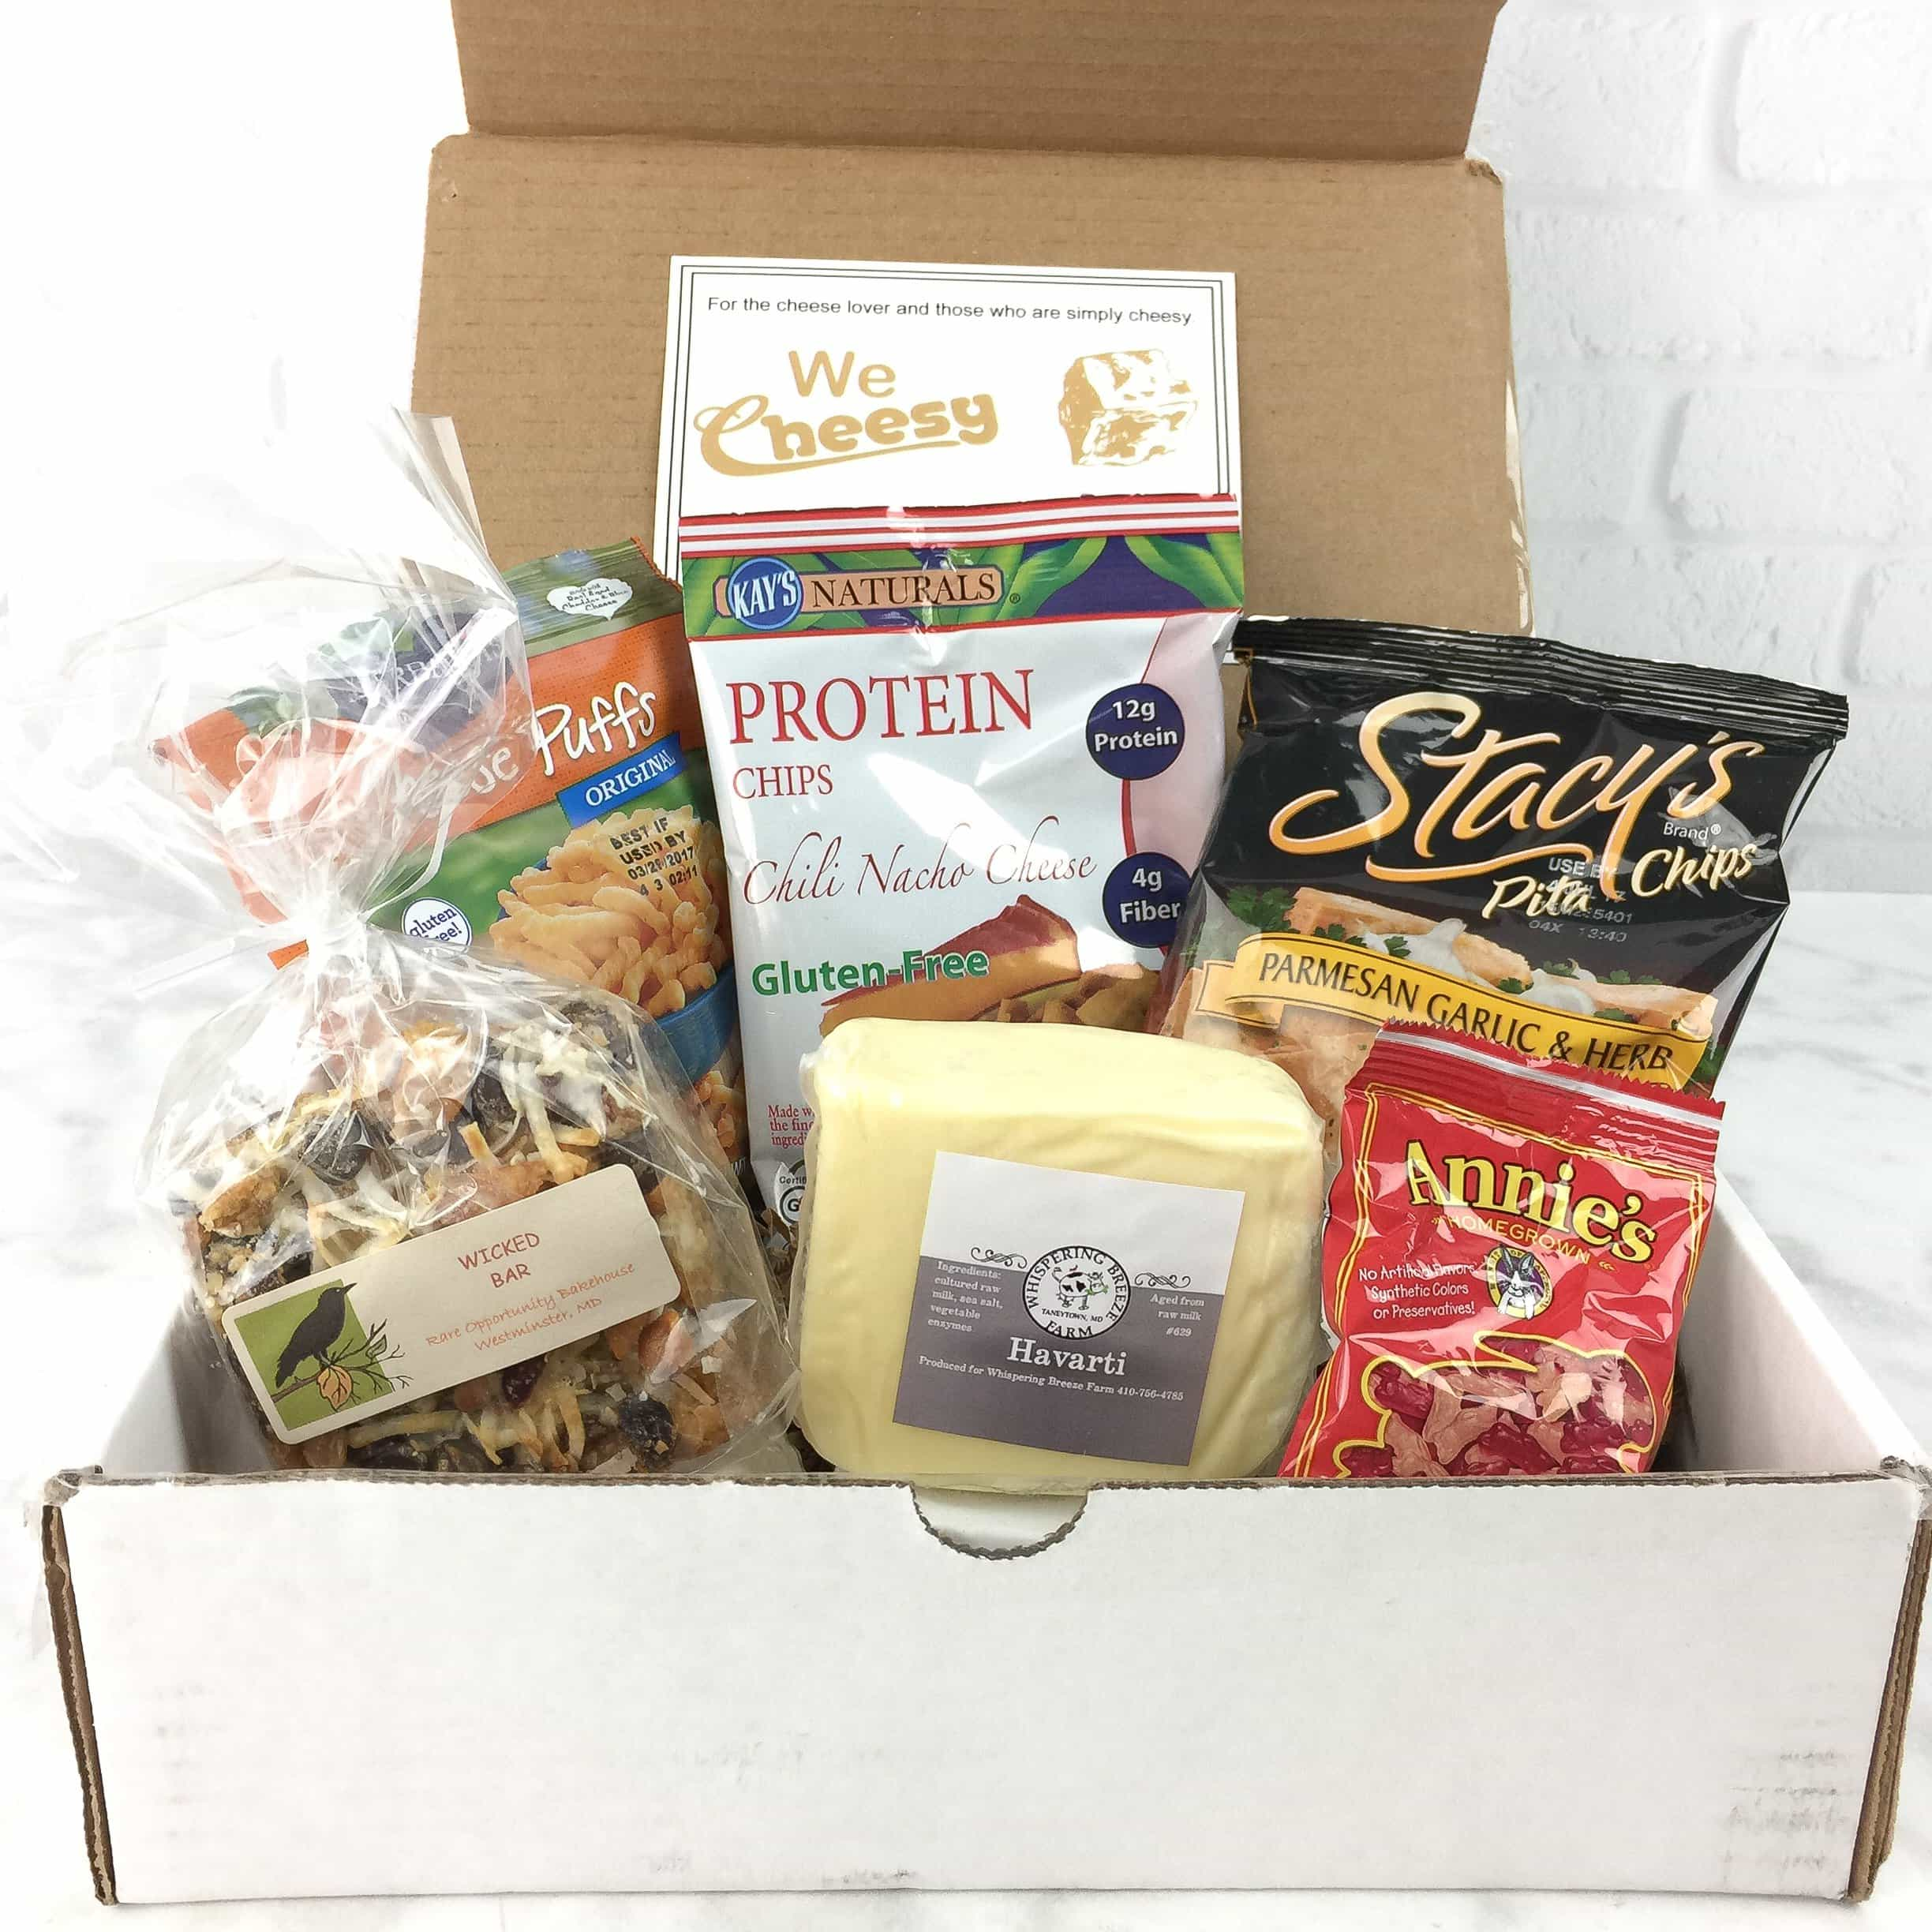 We Cheesy March 2017 Subscription Box Review + Coupon